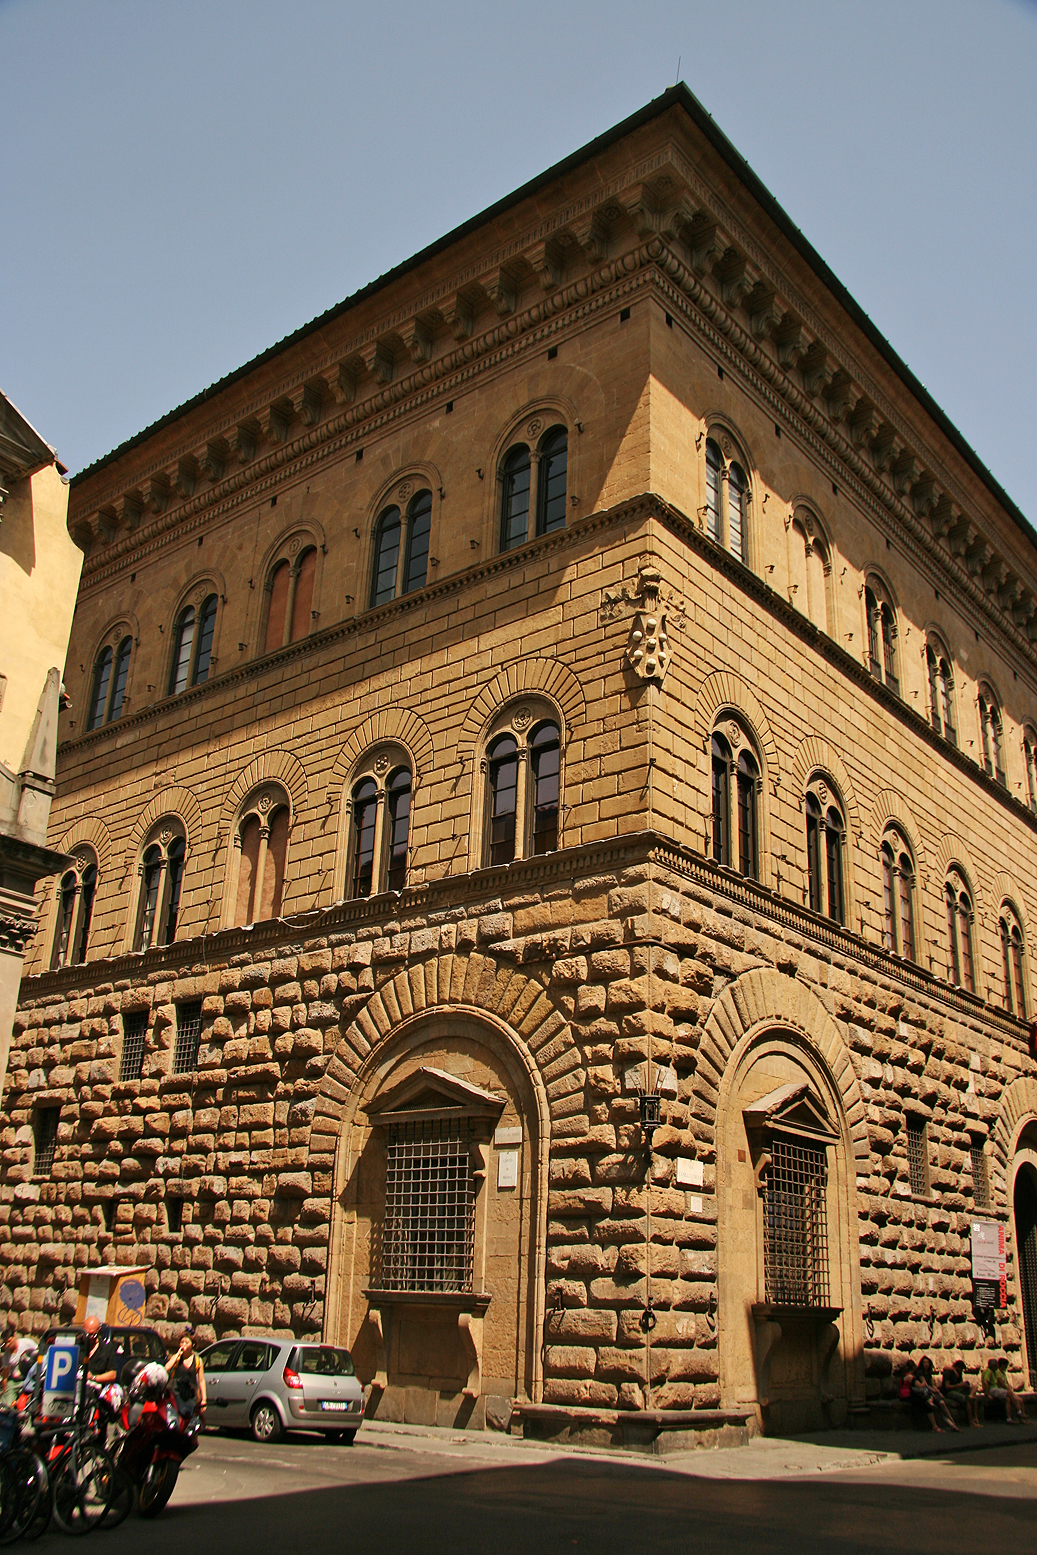 The Palazzo Medici Riccardi, the renaissance palace of the influential Medici family in Firenze.